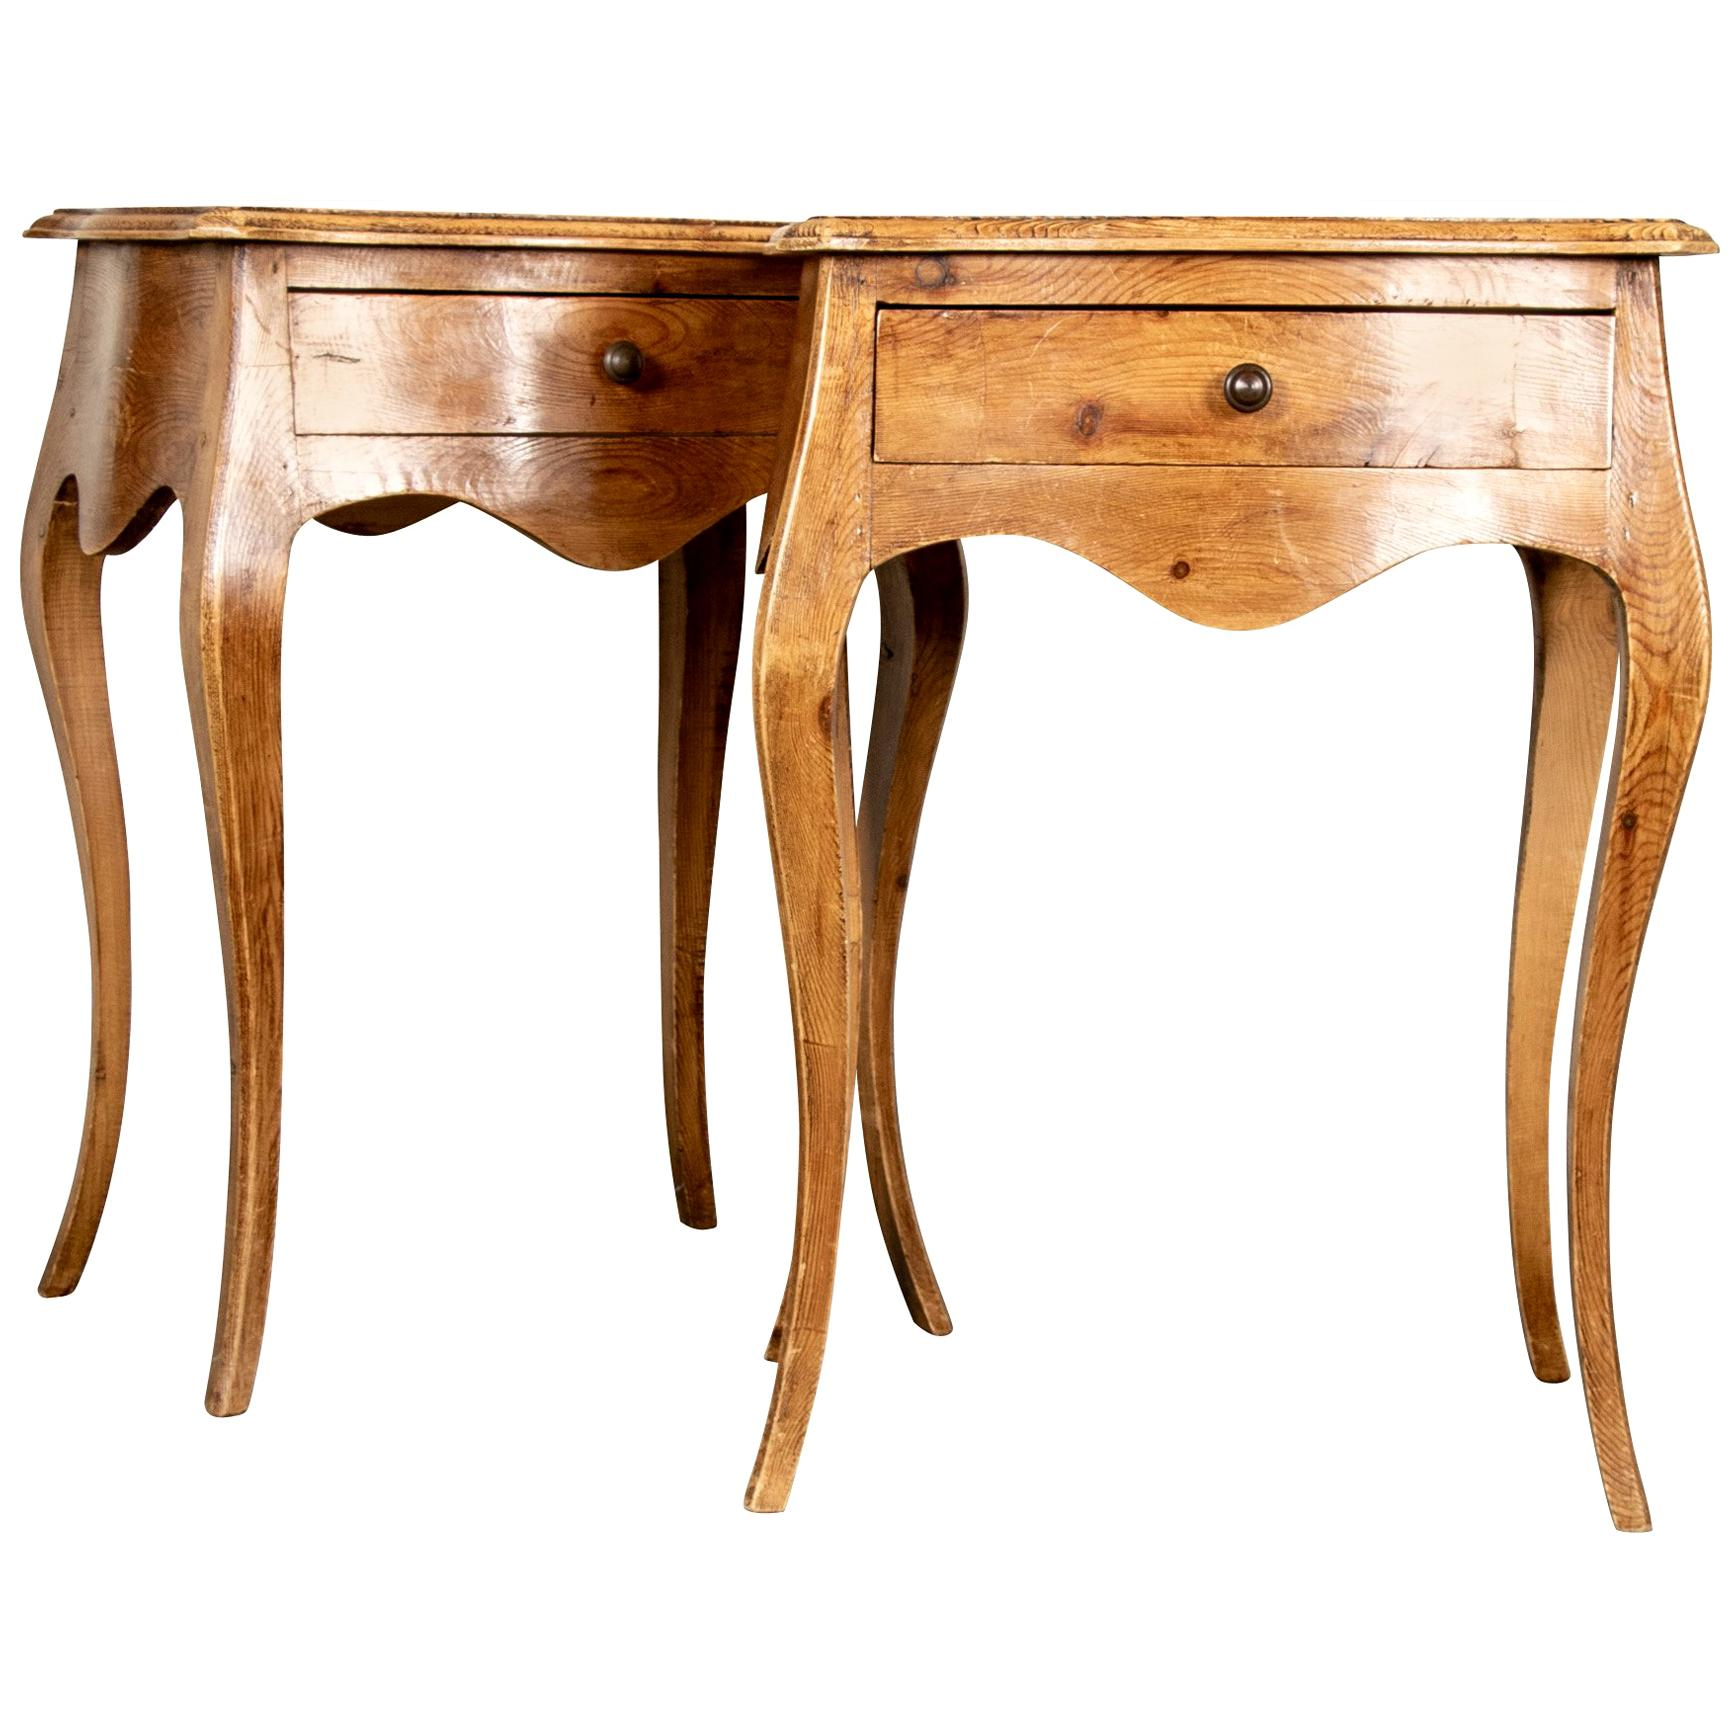 Pair Of French Style Side Table Or Nightstands From Antique Wood